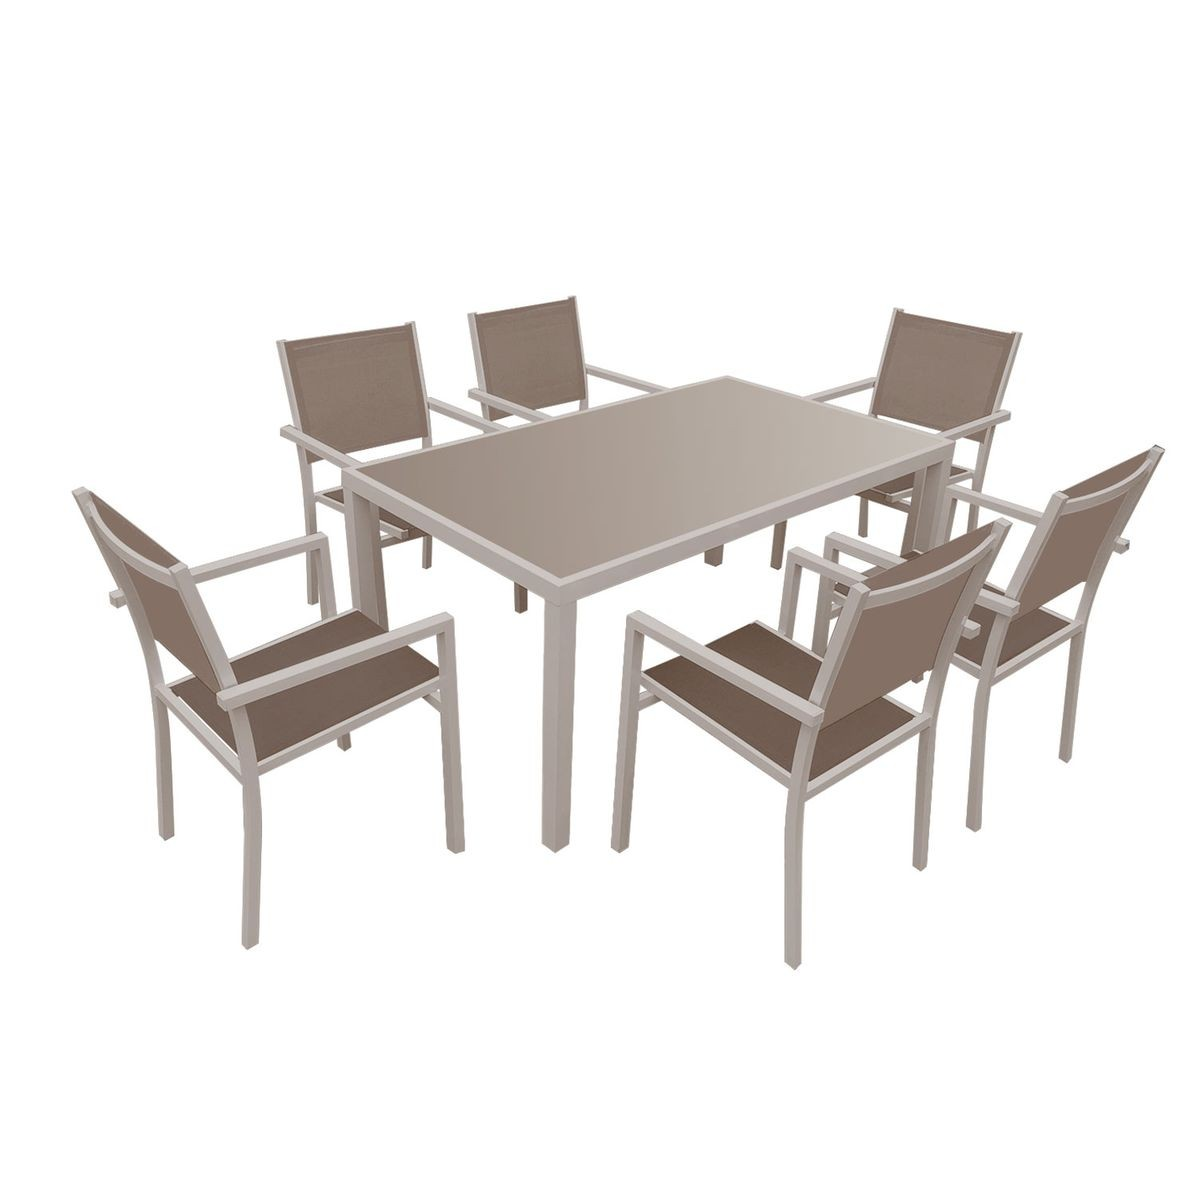 Table Bistrot 4 Personnes Nouveau Alice S Garden Salon De Jardin En Bois Extensible Of 24 Inspirant Table Bistrot 4 Personnes